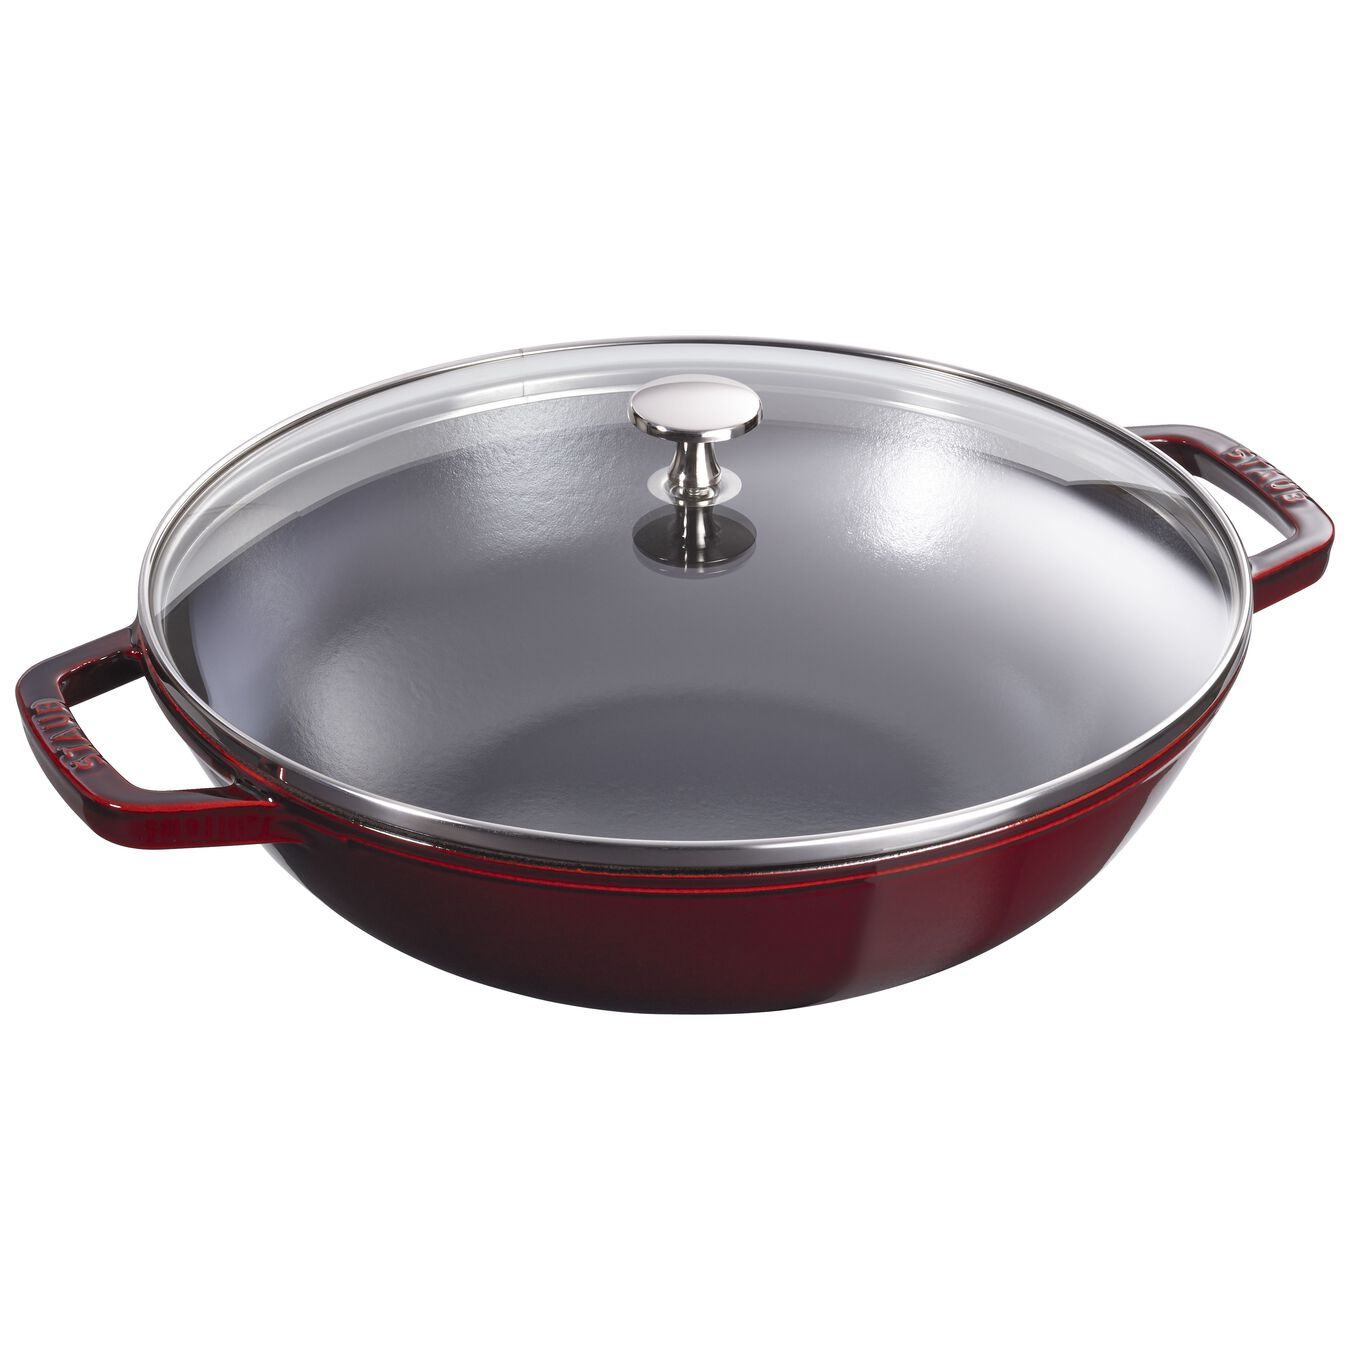 30 cm / 12 inch Wok with glass lid, grenadine-red,,large 1